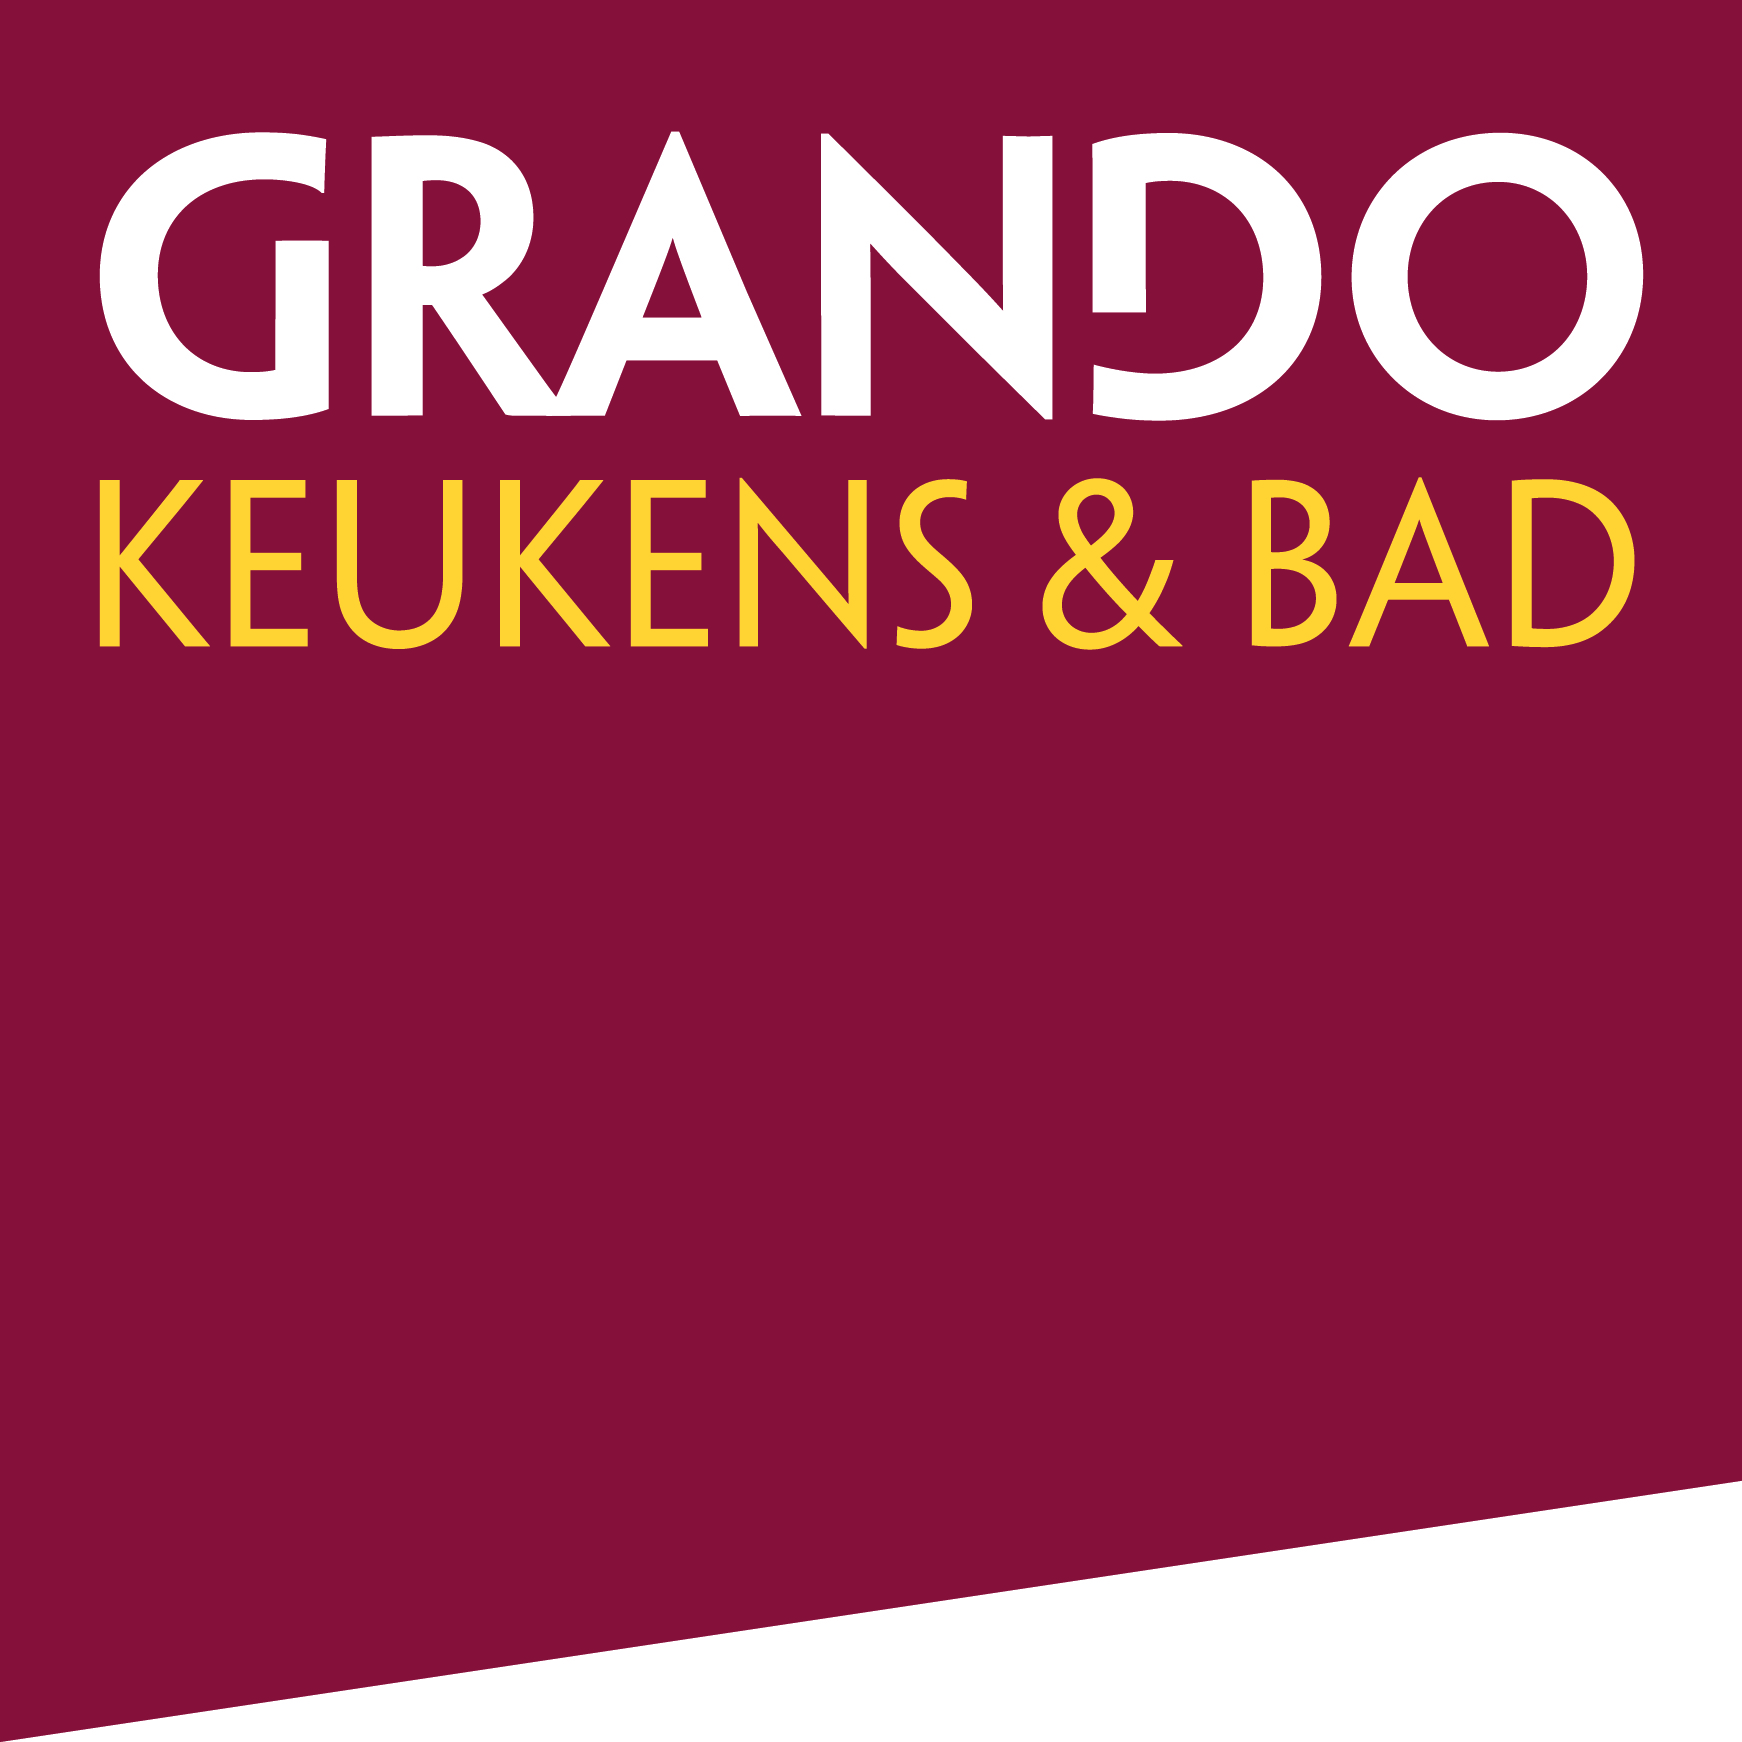 Grando Keukens & Bad Waddinxveen